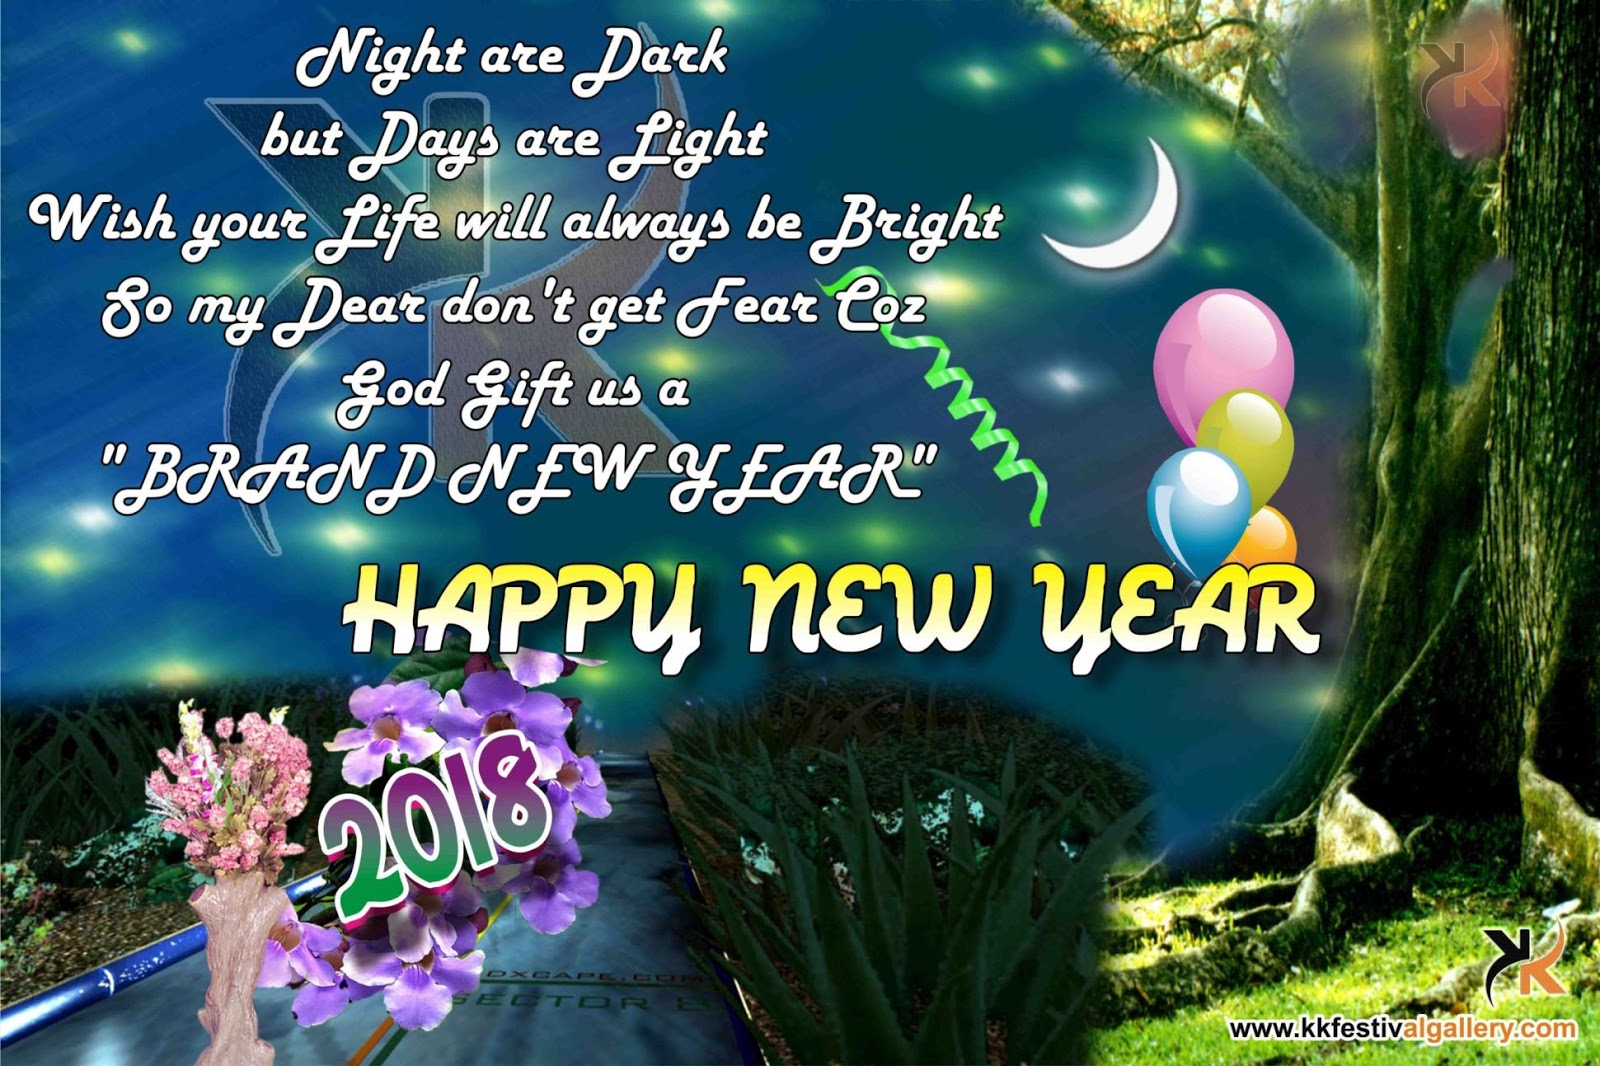 Happy New Year 2018 Messages, Best New Year Wishes, Happy New Year 2018  Quotes, Happy New Year 2018 Wishes, New Year 2018 Images, Happy New Year  Card, ...